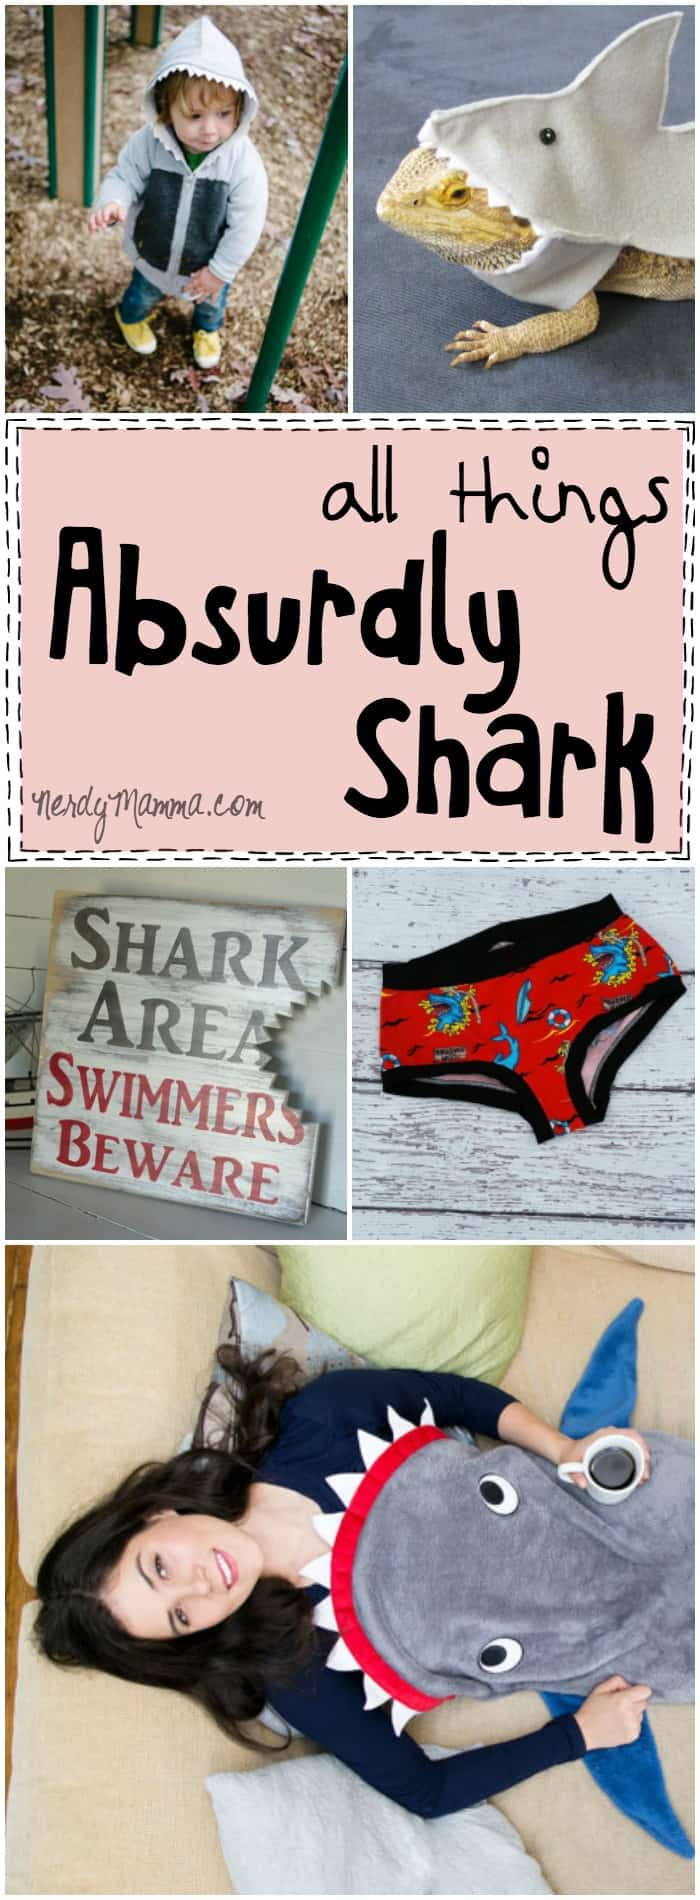 This collection of all things absurdly shark is just so funny. I mean, who buys this! Oh, wait, I think I might need those panties...LOL!